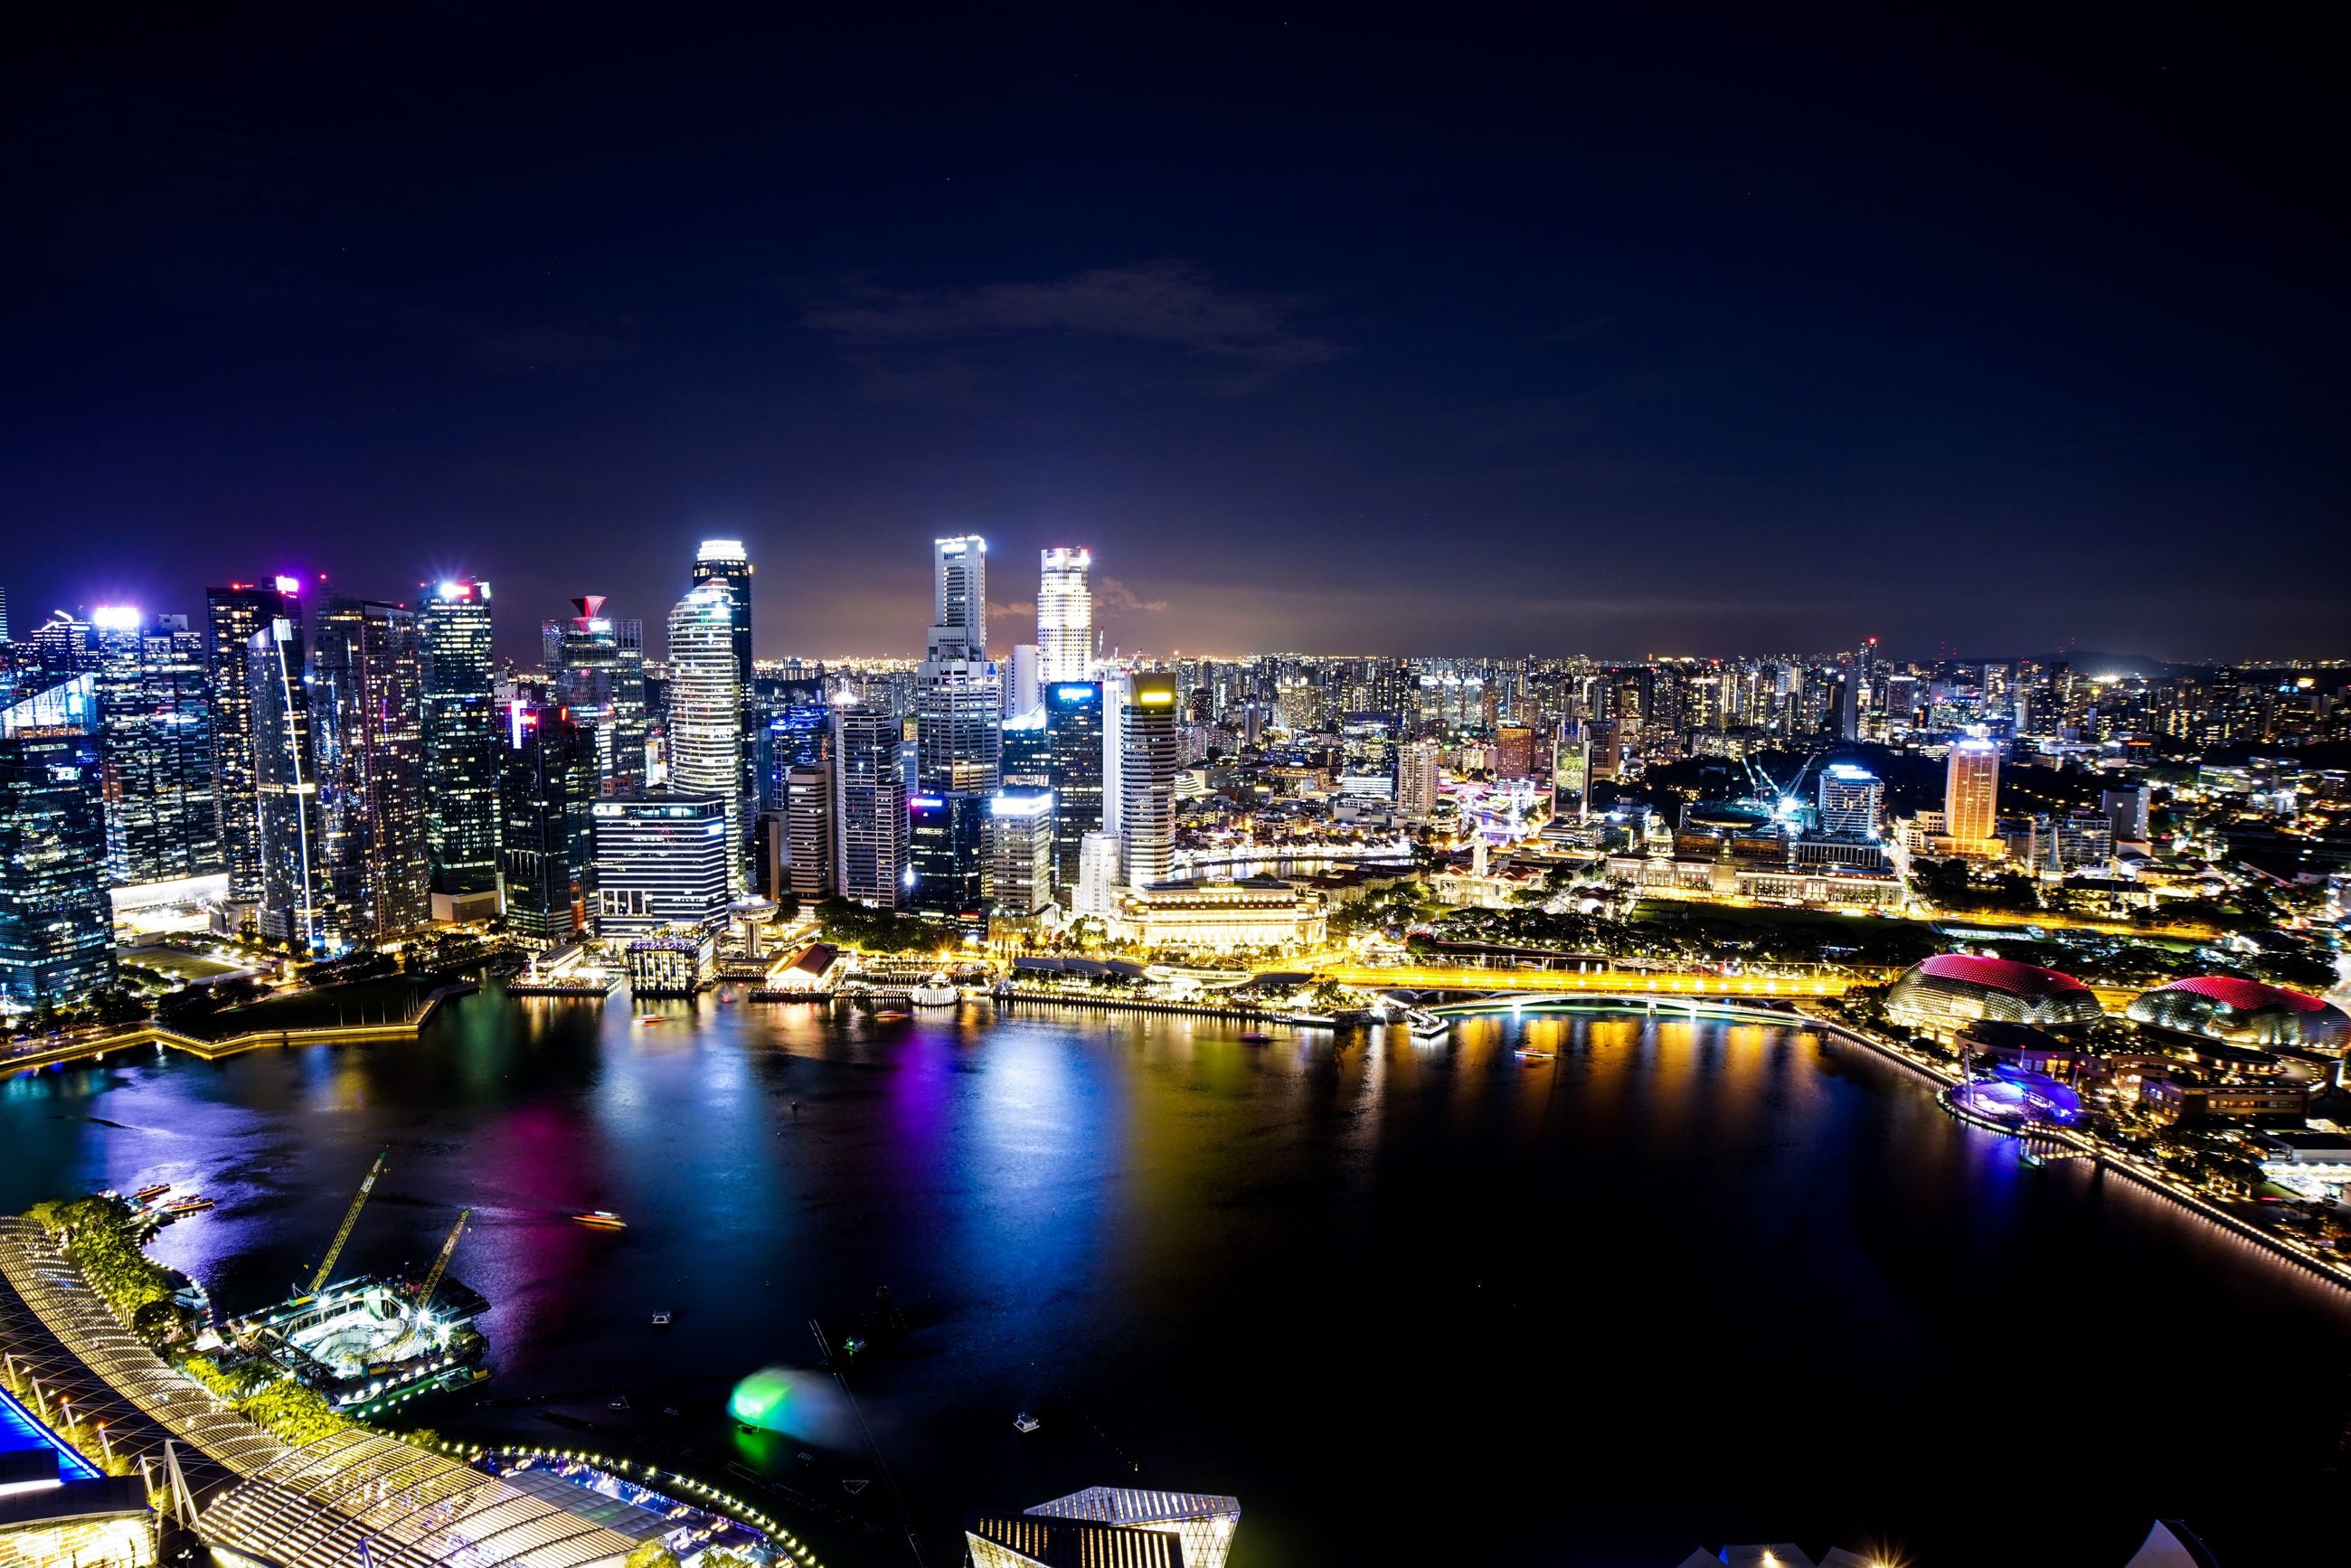 building exterior, architecture, city, built structure, building, illuminated, night, cityscape, water, office building exterior, sky, skyscraper, landscape, travel destinations, nature, modern, urban skyline, residential district, no people, outdoors